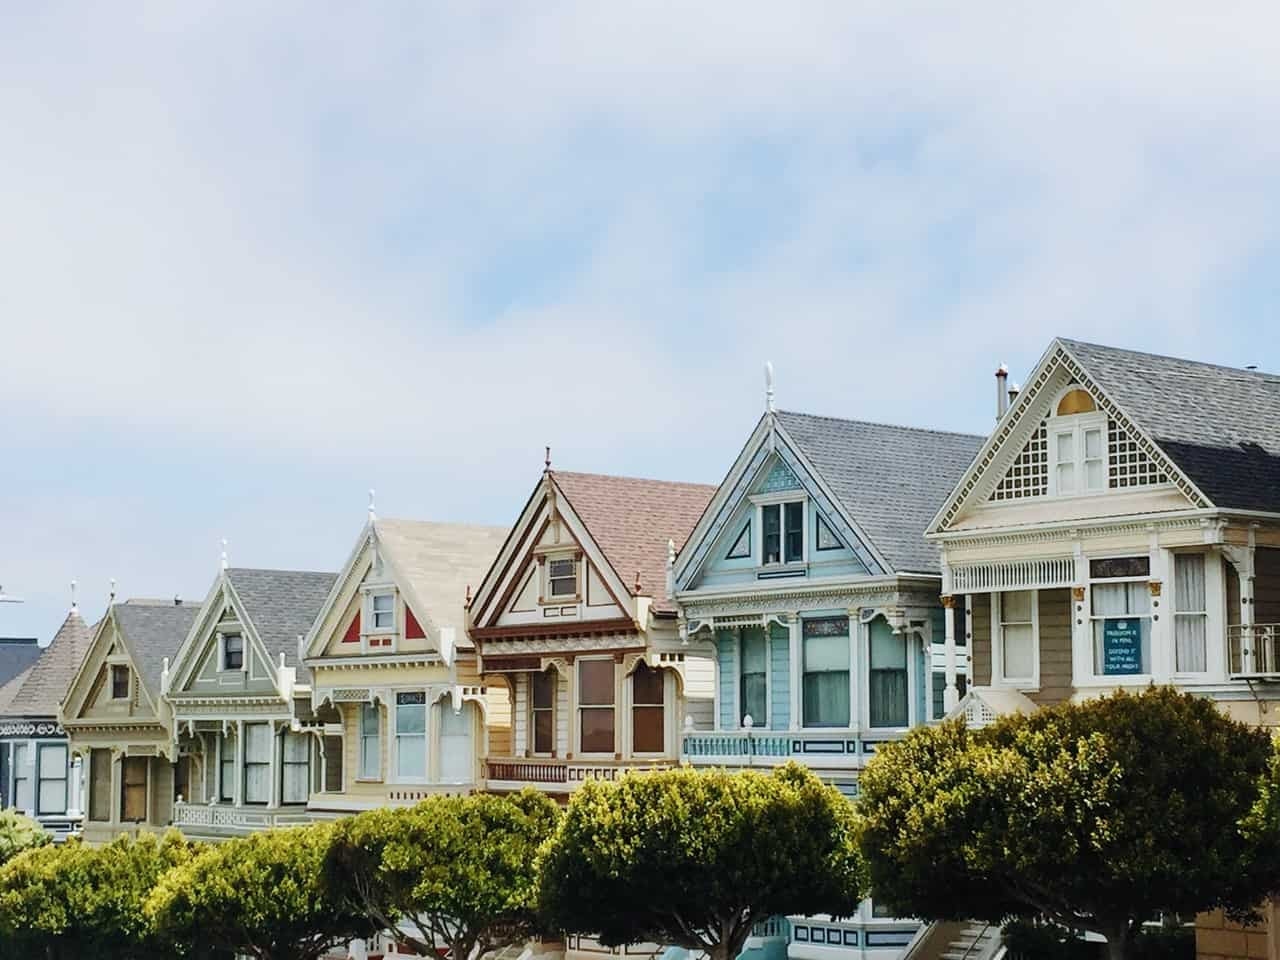 The risks mortgages pose to our housing market